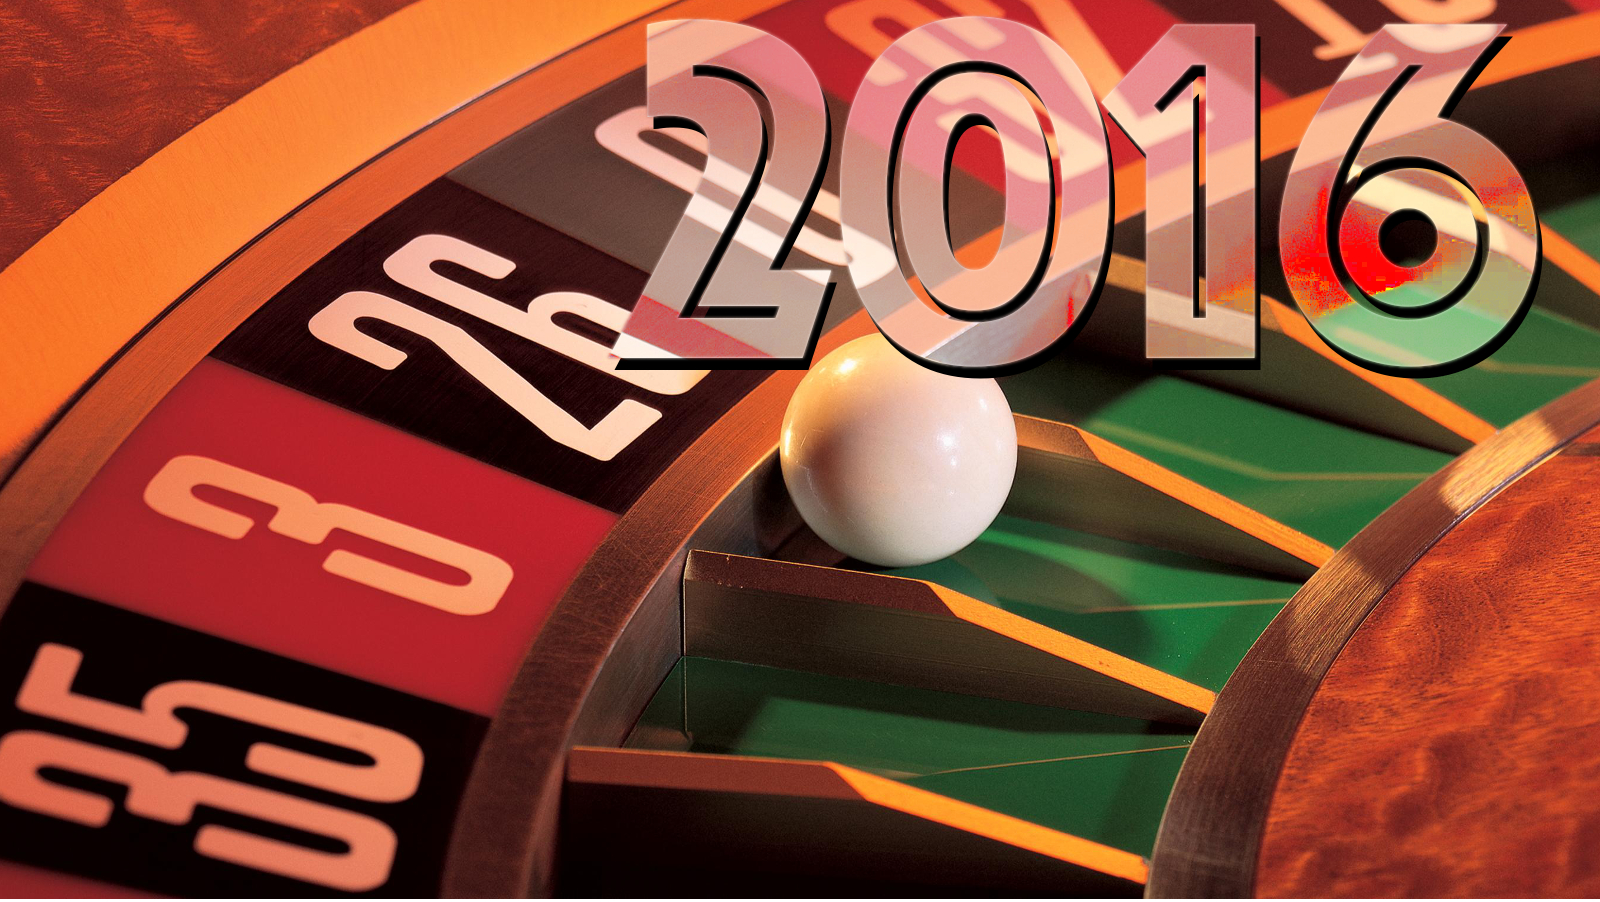 The top casino stories of 2016